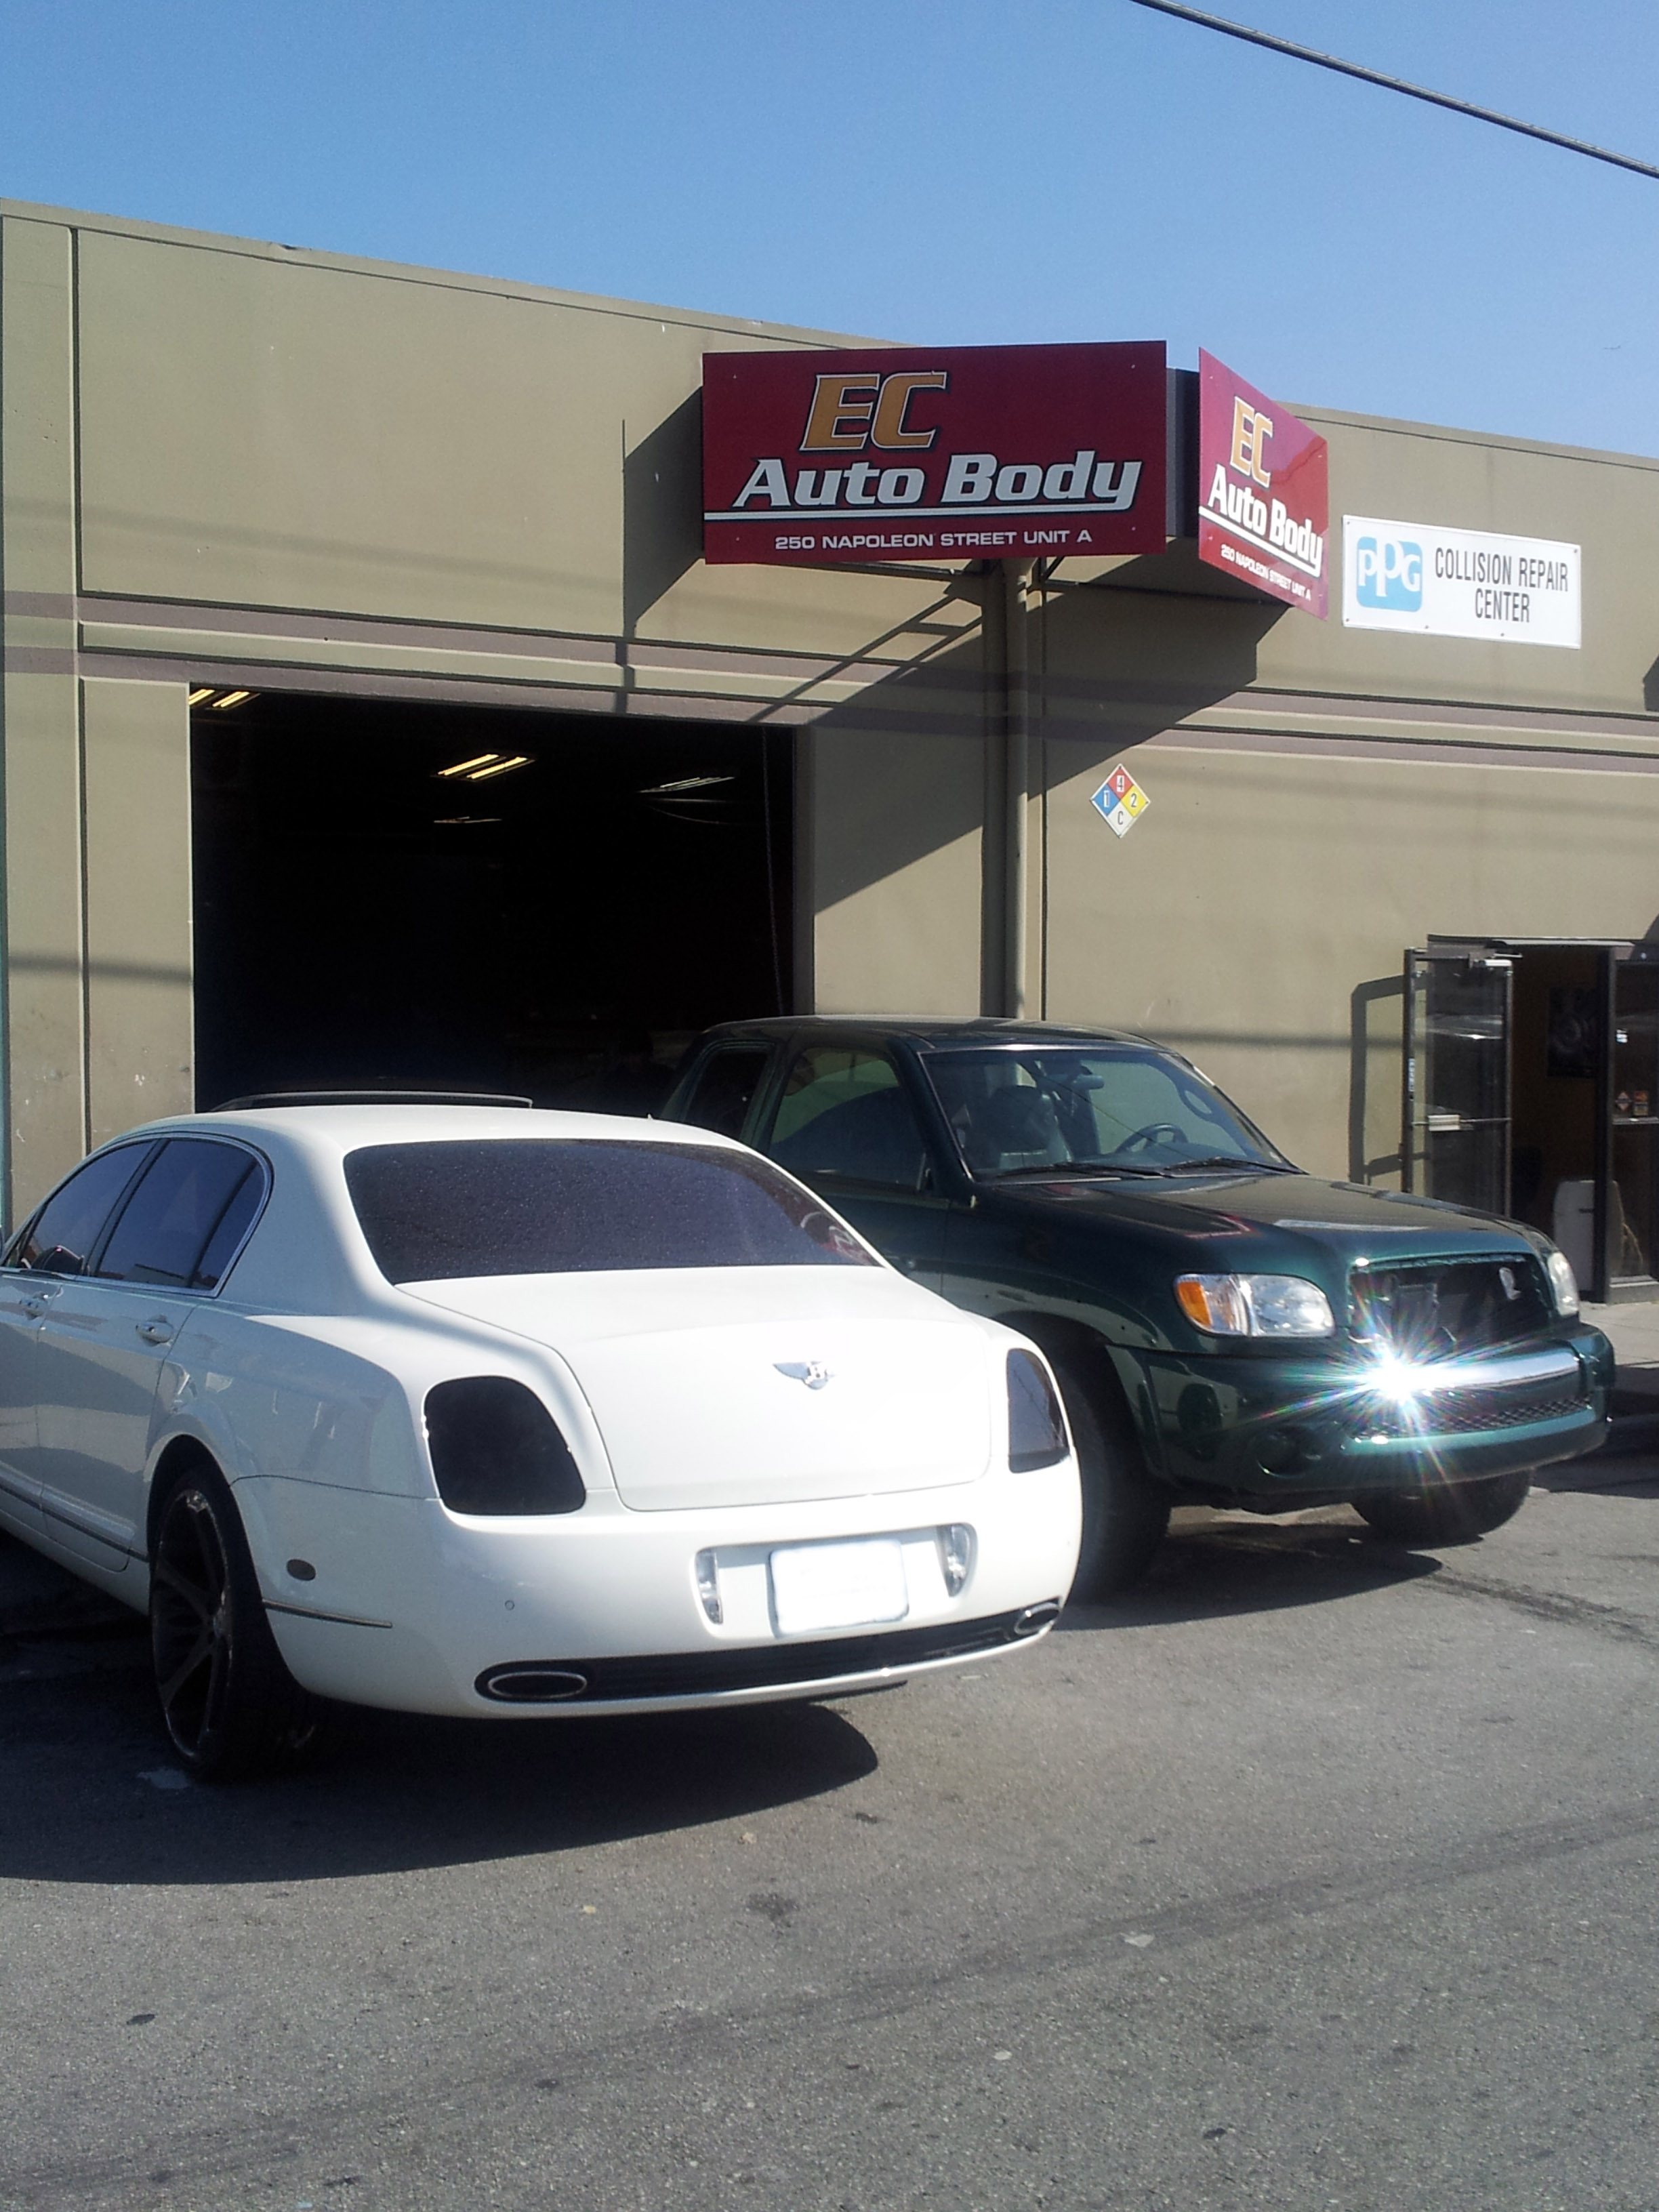 Ec Auto Body Automotive Repair In San Francisco Is Announcing End Of The Summer Special Car